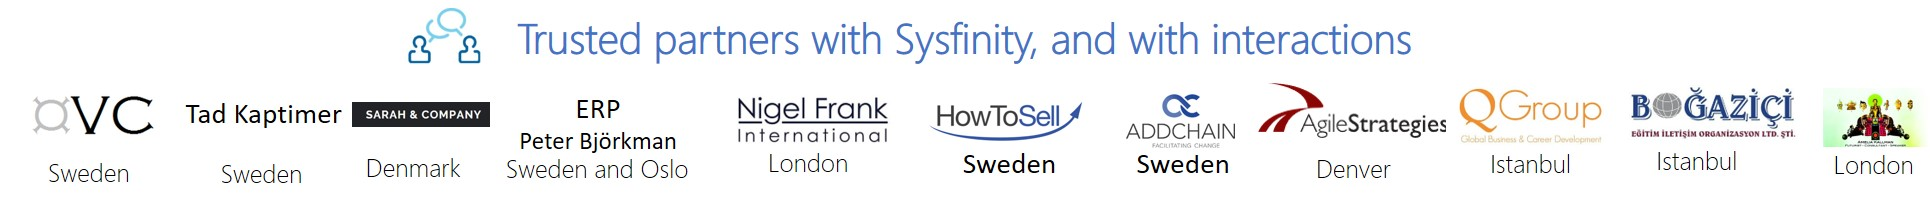 Sysfinity and digital trusted partners with interactions